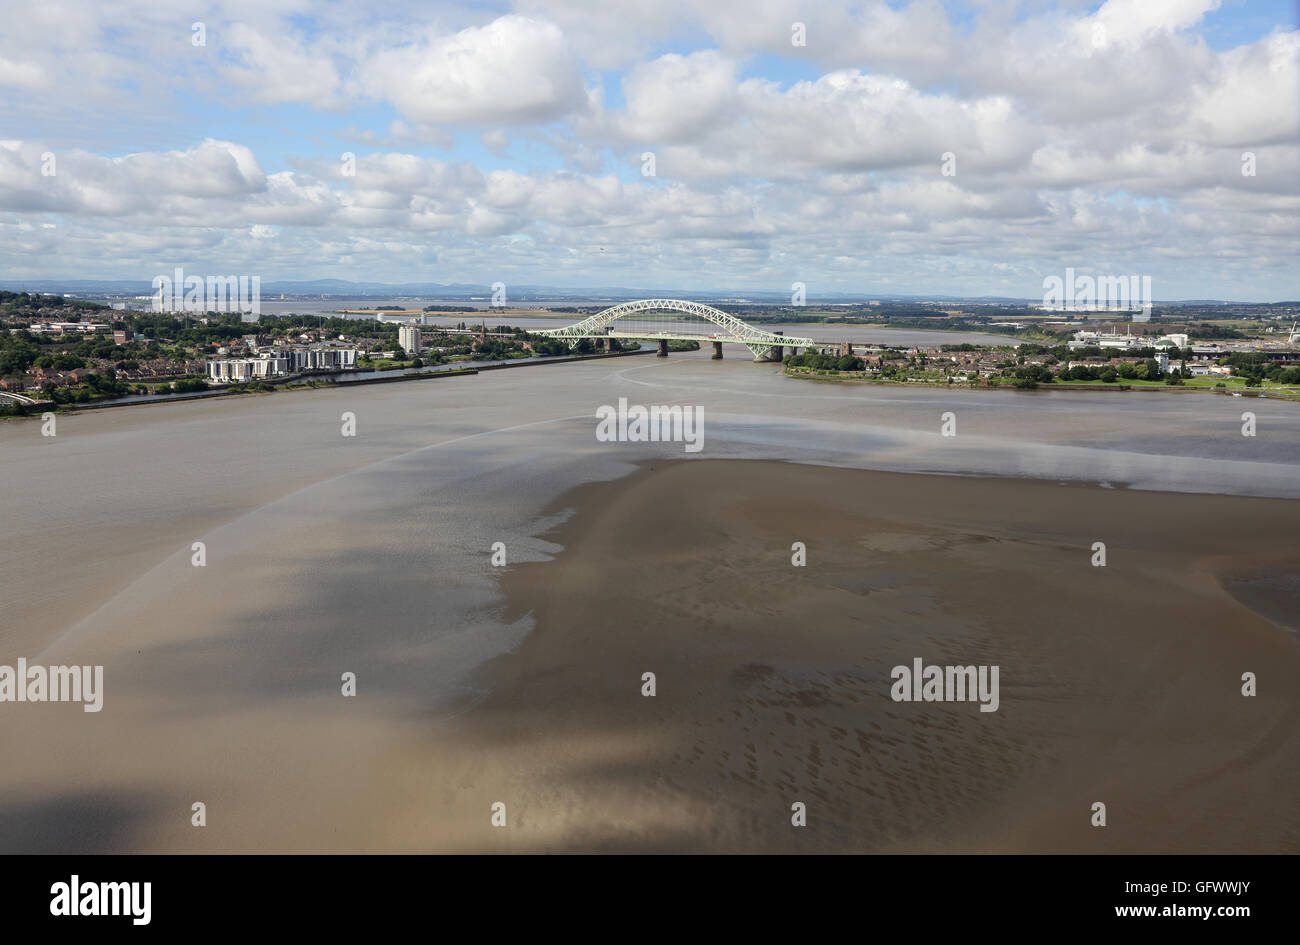 High-level view of the River Mersey at Runcorn showing the Silver Jubilee bridge, estuary mudflats and Welsh Mountains - Stock Image